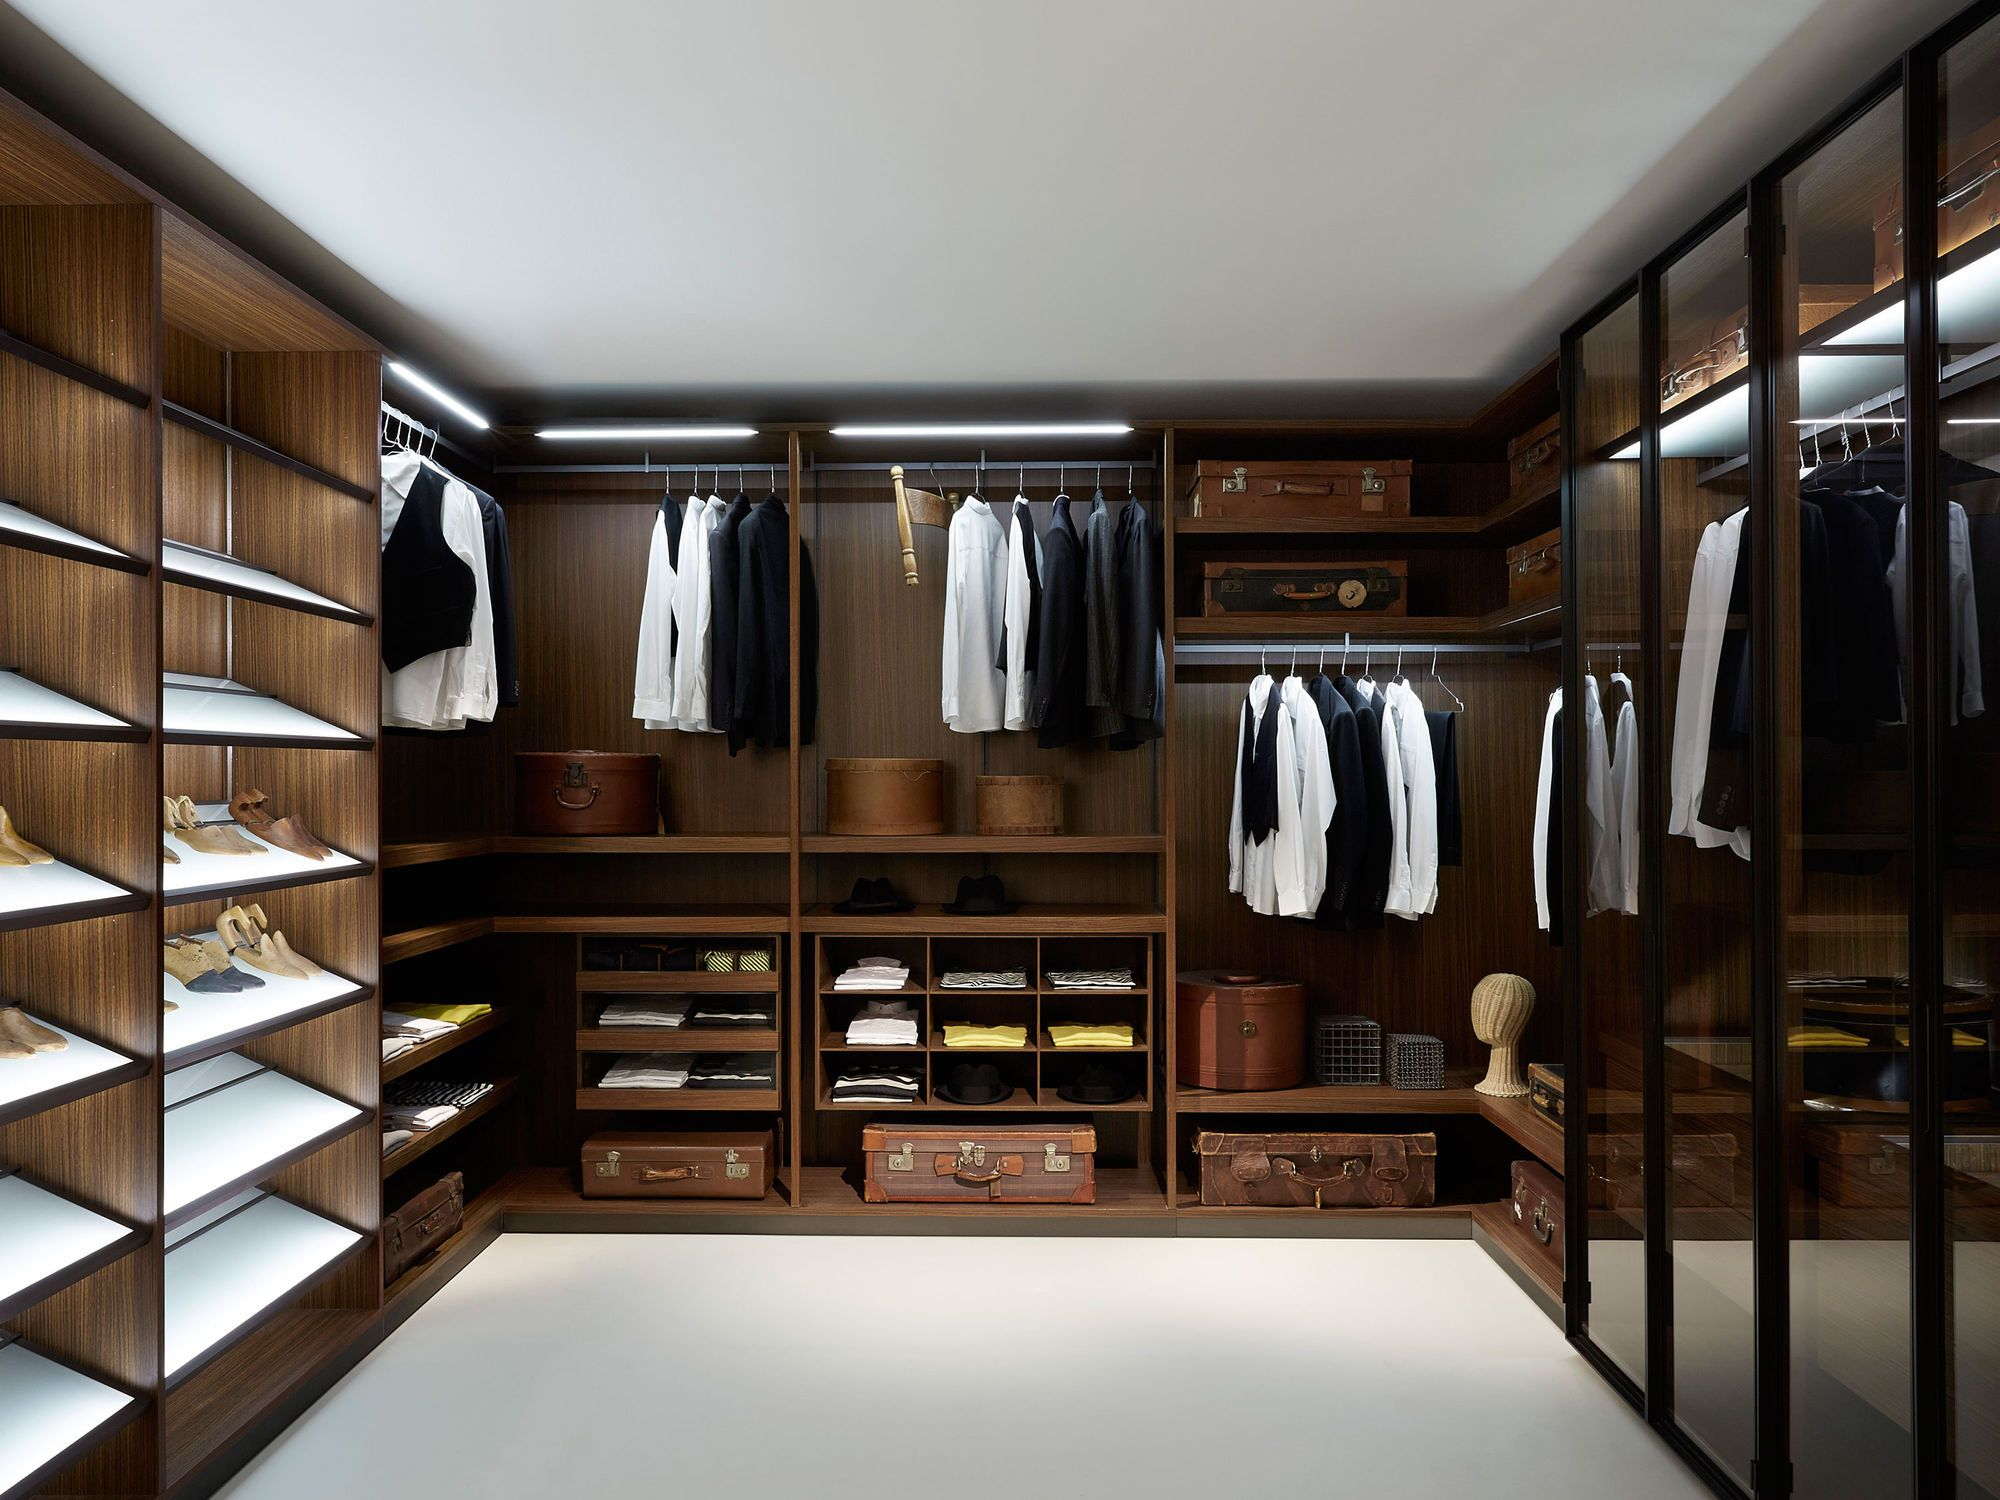 Master Closet Design Ideas small bedroom closet design amusing master bedroom closet design ideas In This Post We Have 21 Best Traditional Storage Closets Design Ideas For Your Beautiful